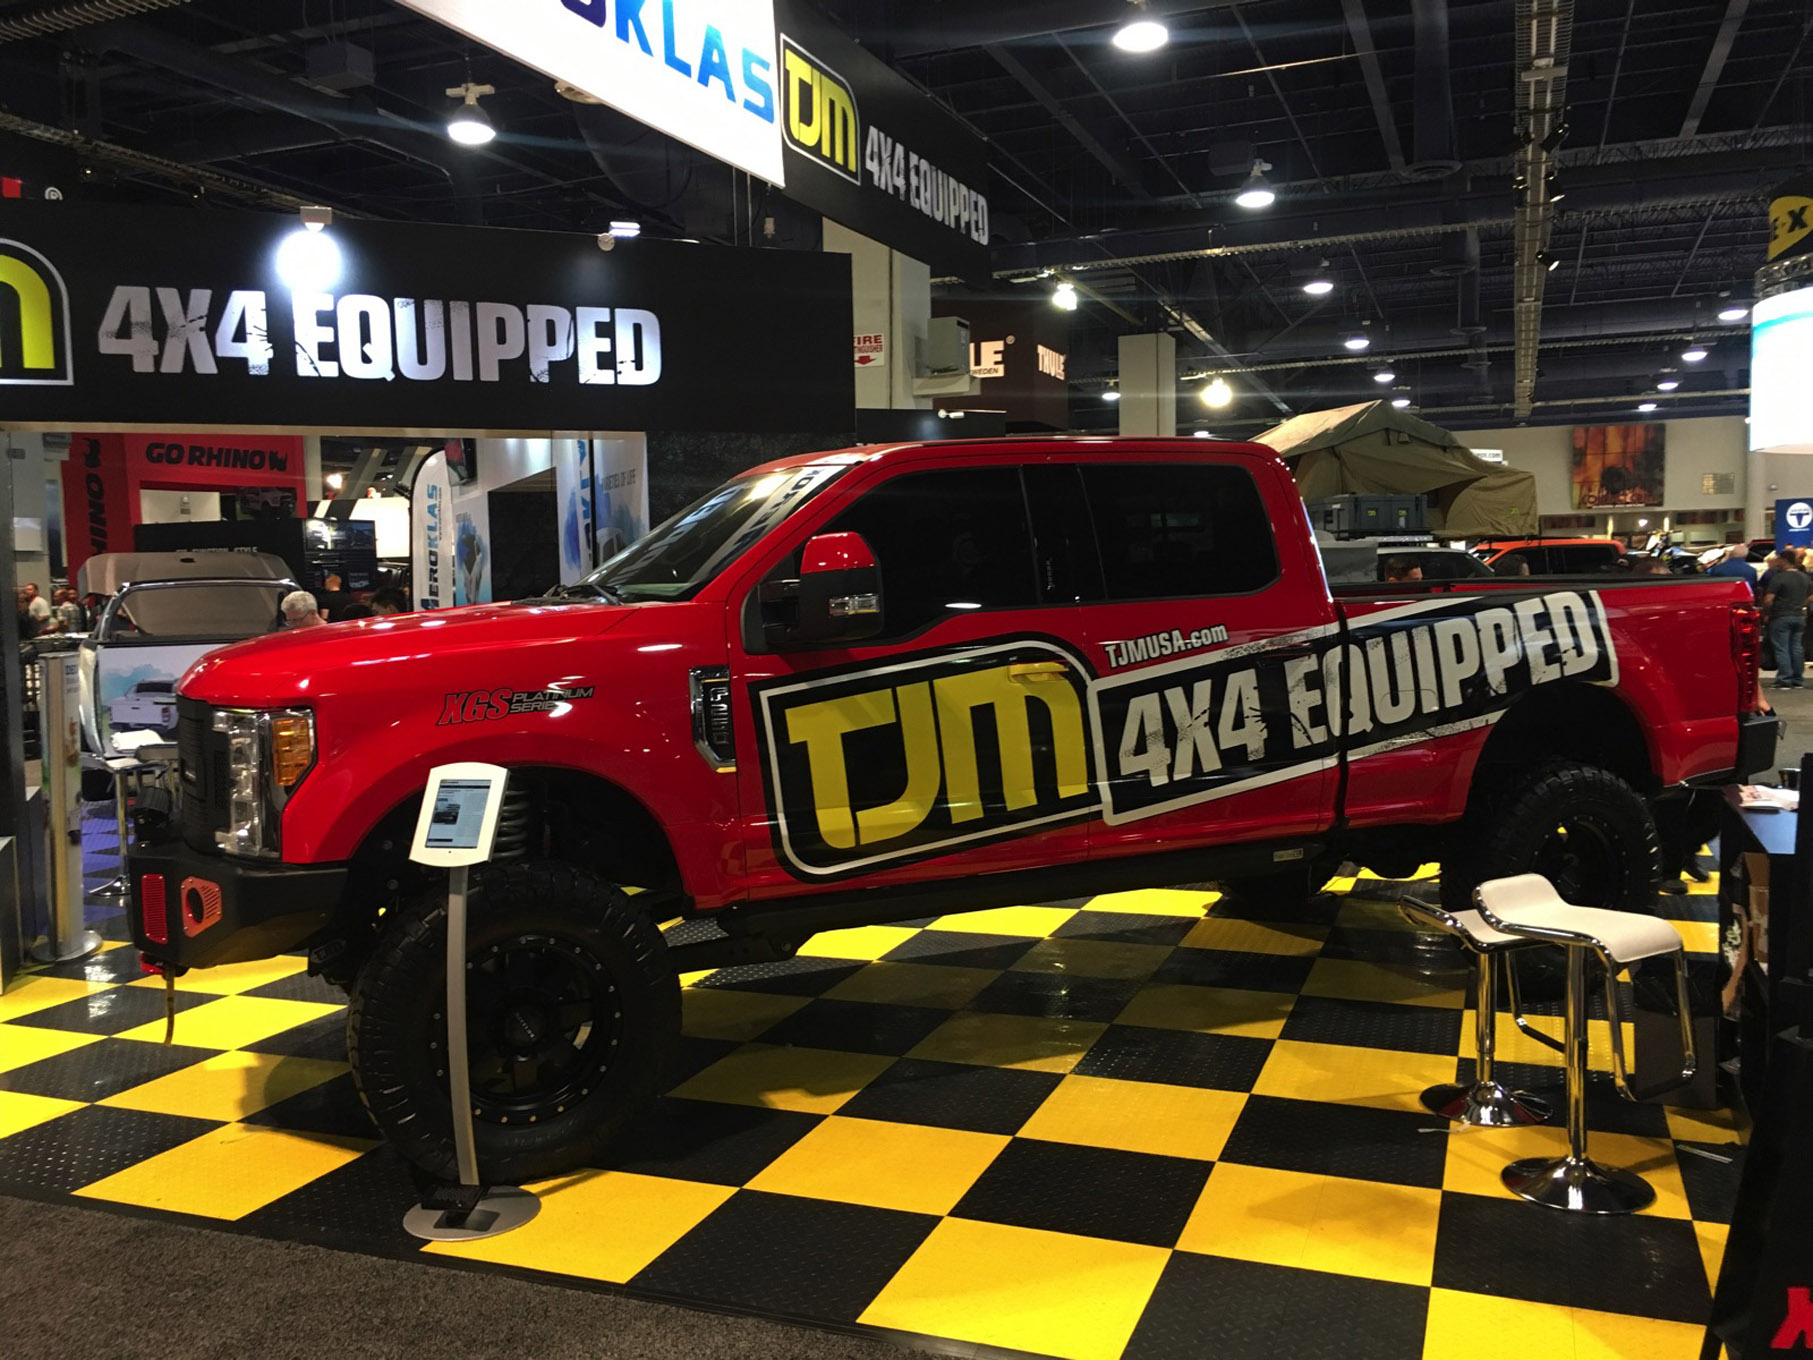 037 sema 2017 day 1 south upper hall gallery photos